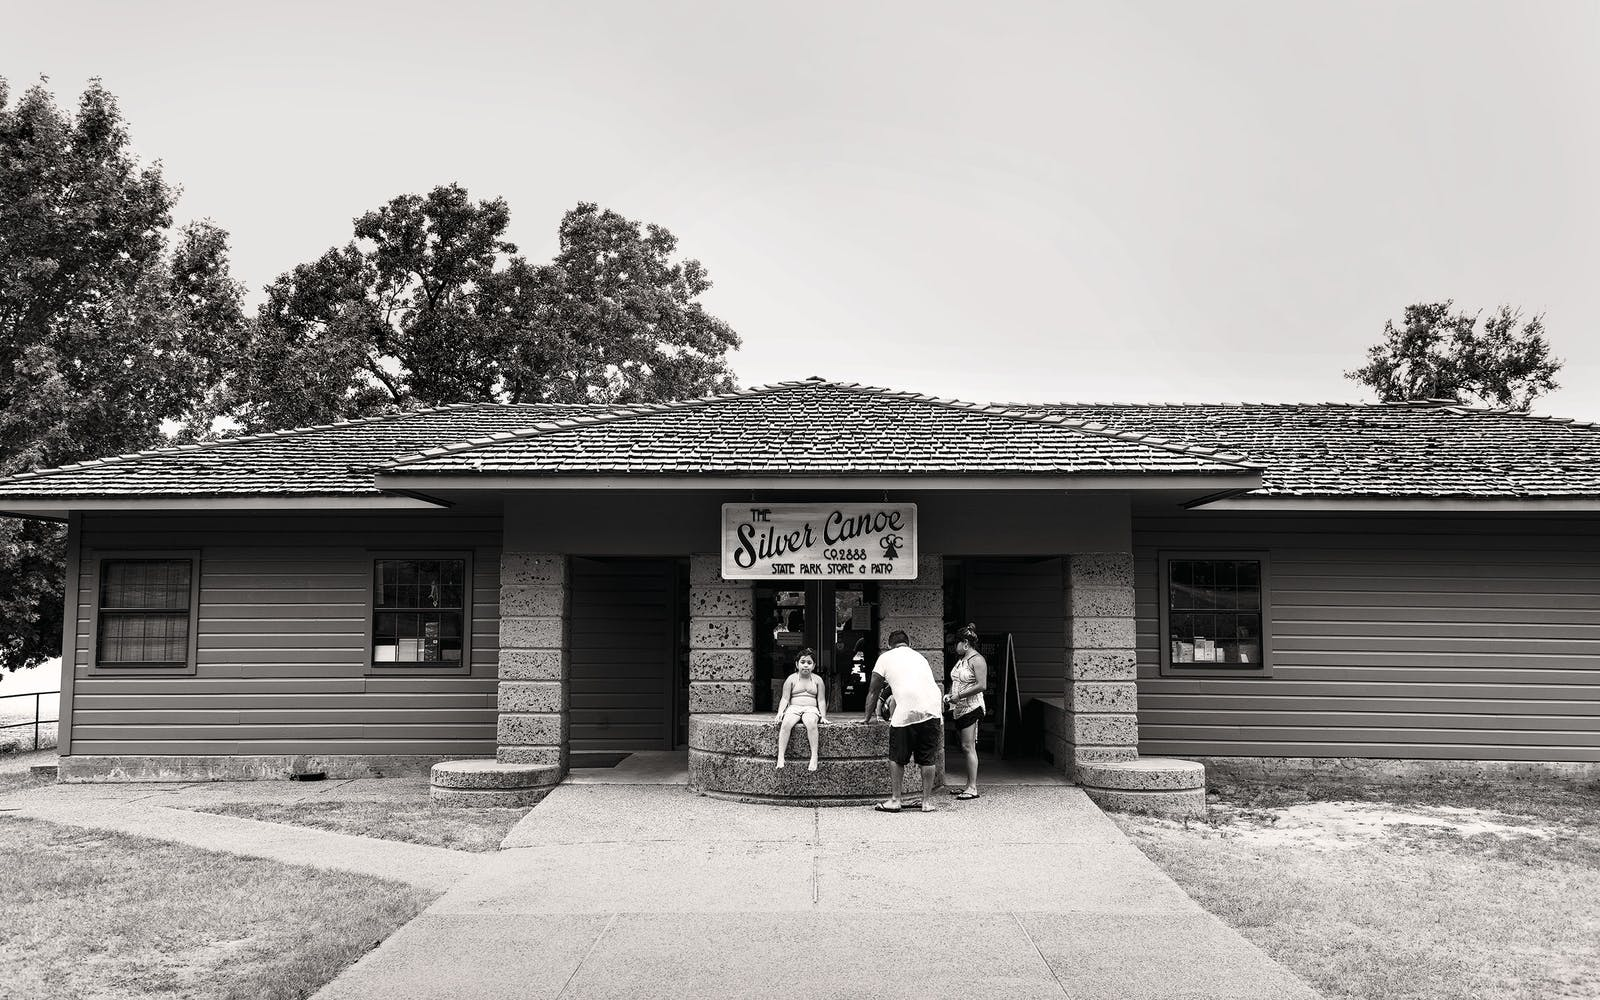 The Silver Canoe park store